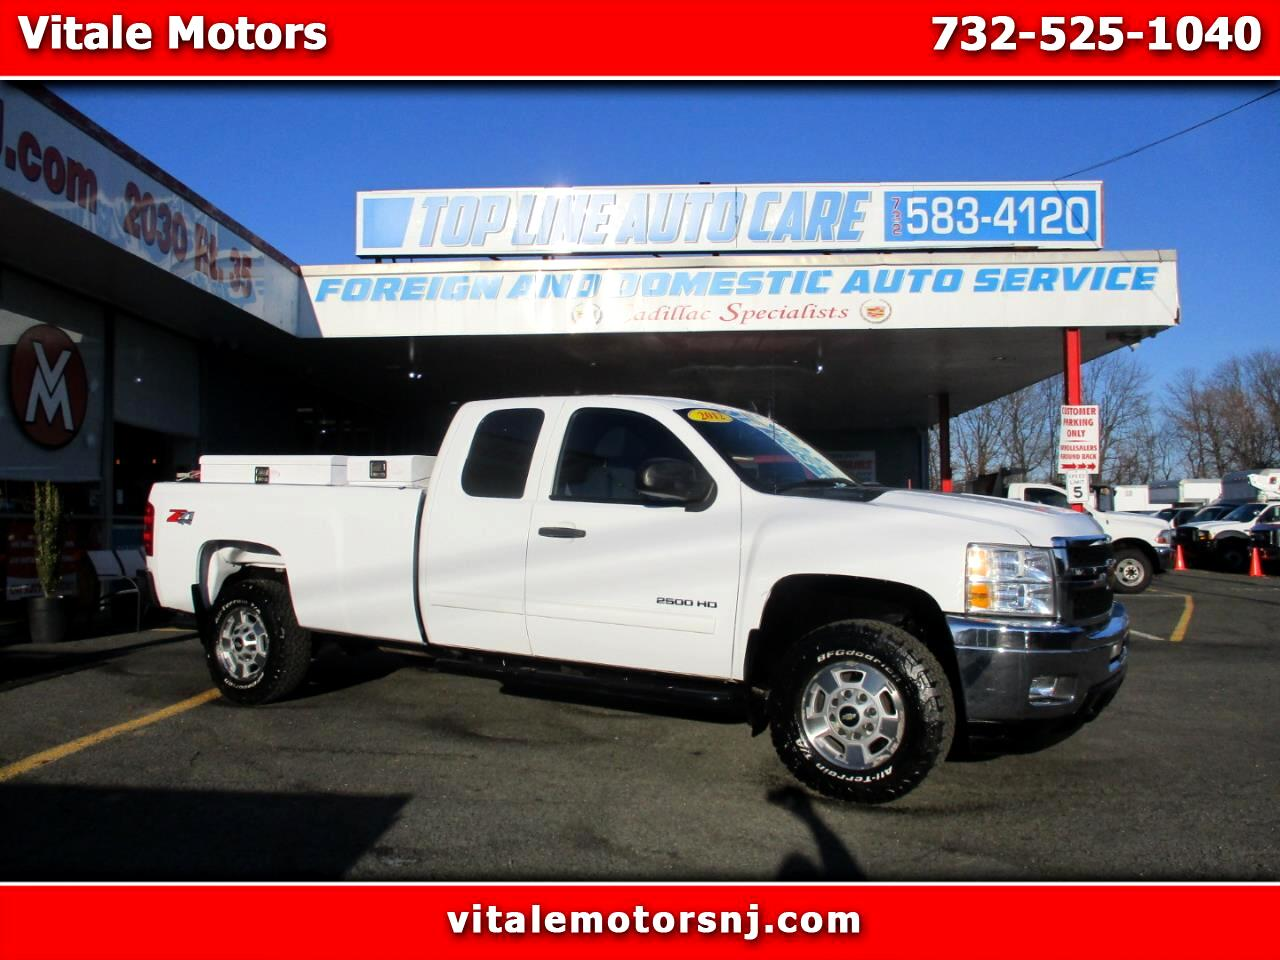 2012 Chevrolet Silverado 2500HD LT EXT. CAB Z71 4WD LONG BED